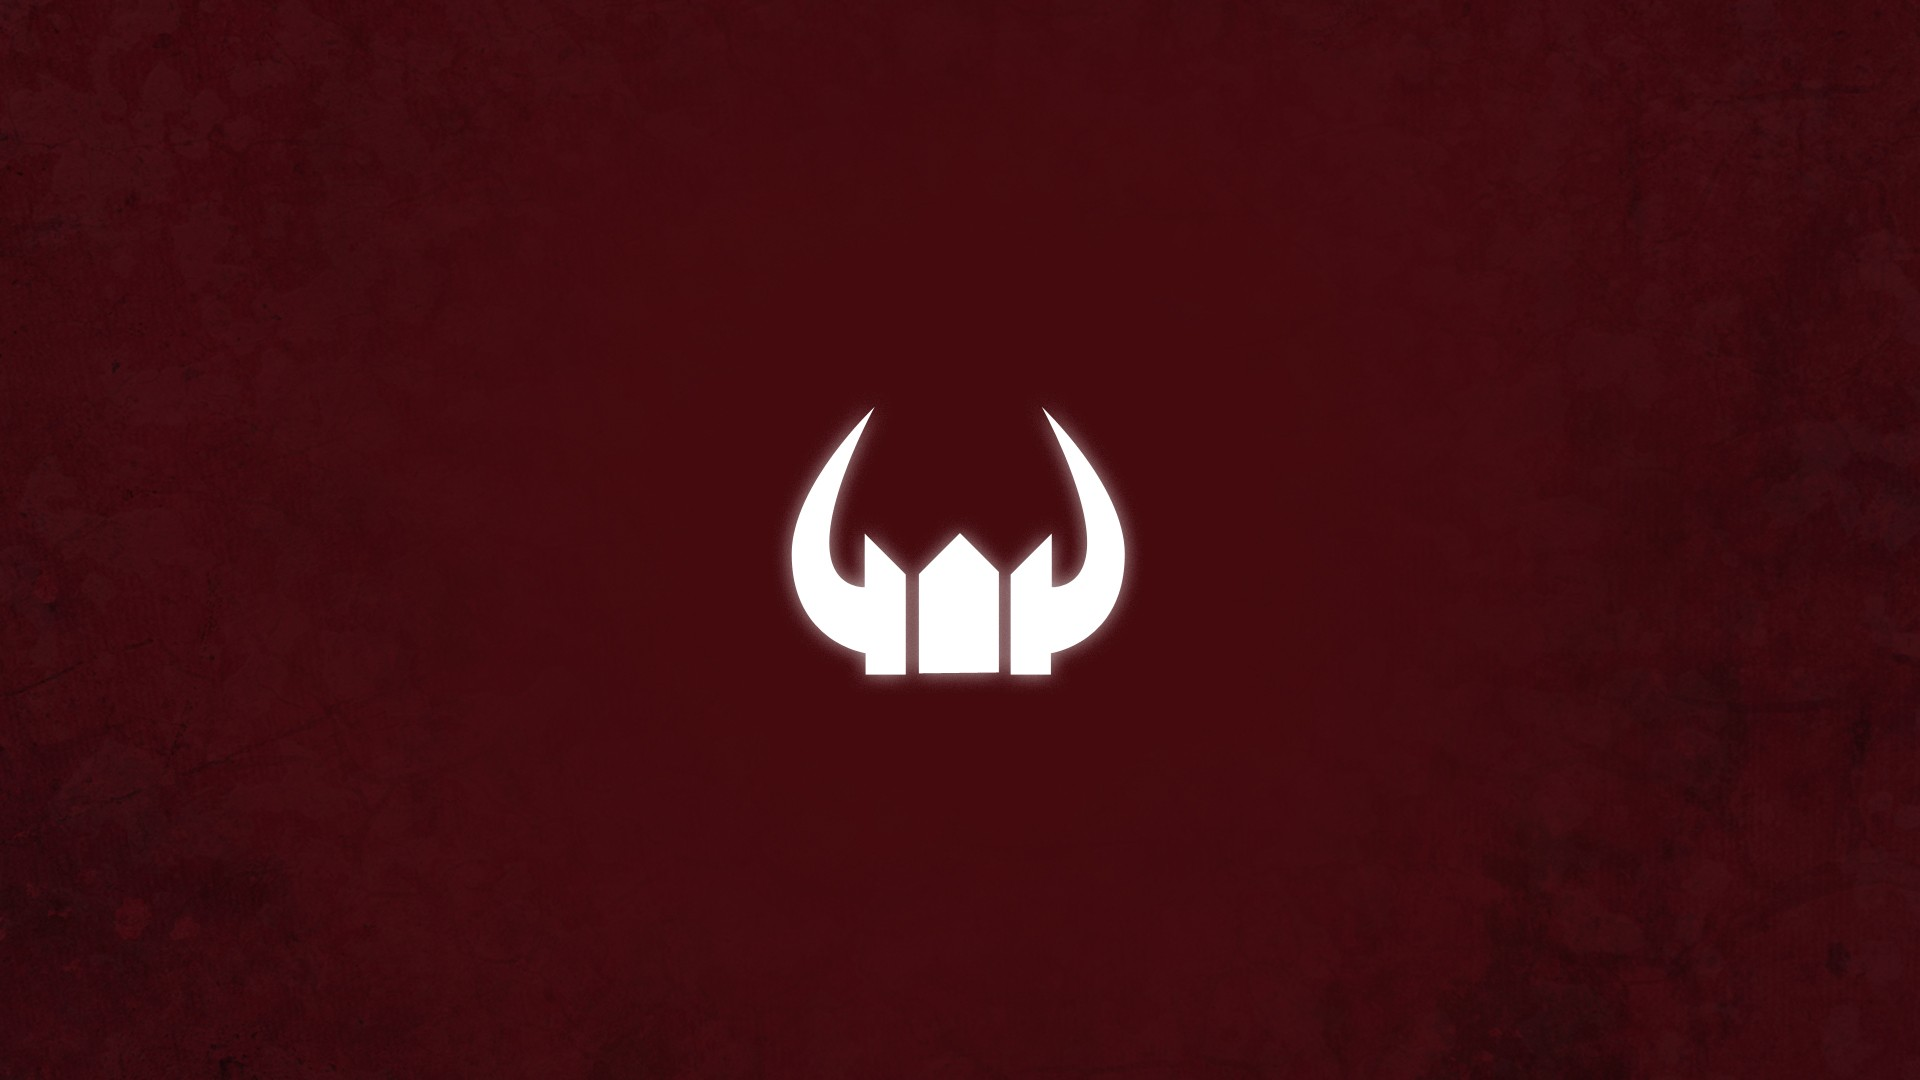 Minimalistic Red Black Rock Shooter Symbol Horns Black Gold Saw HD Wallpaper